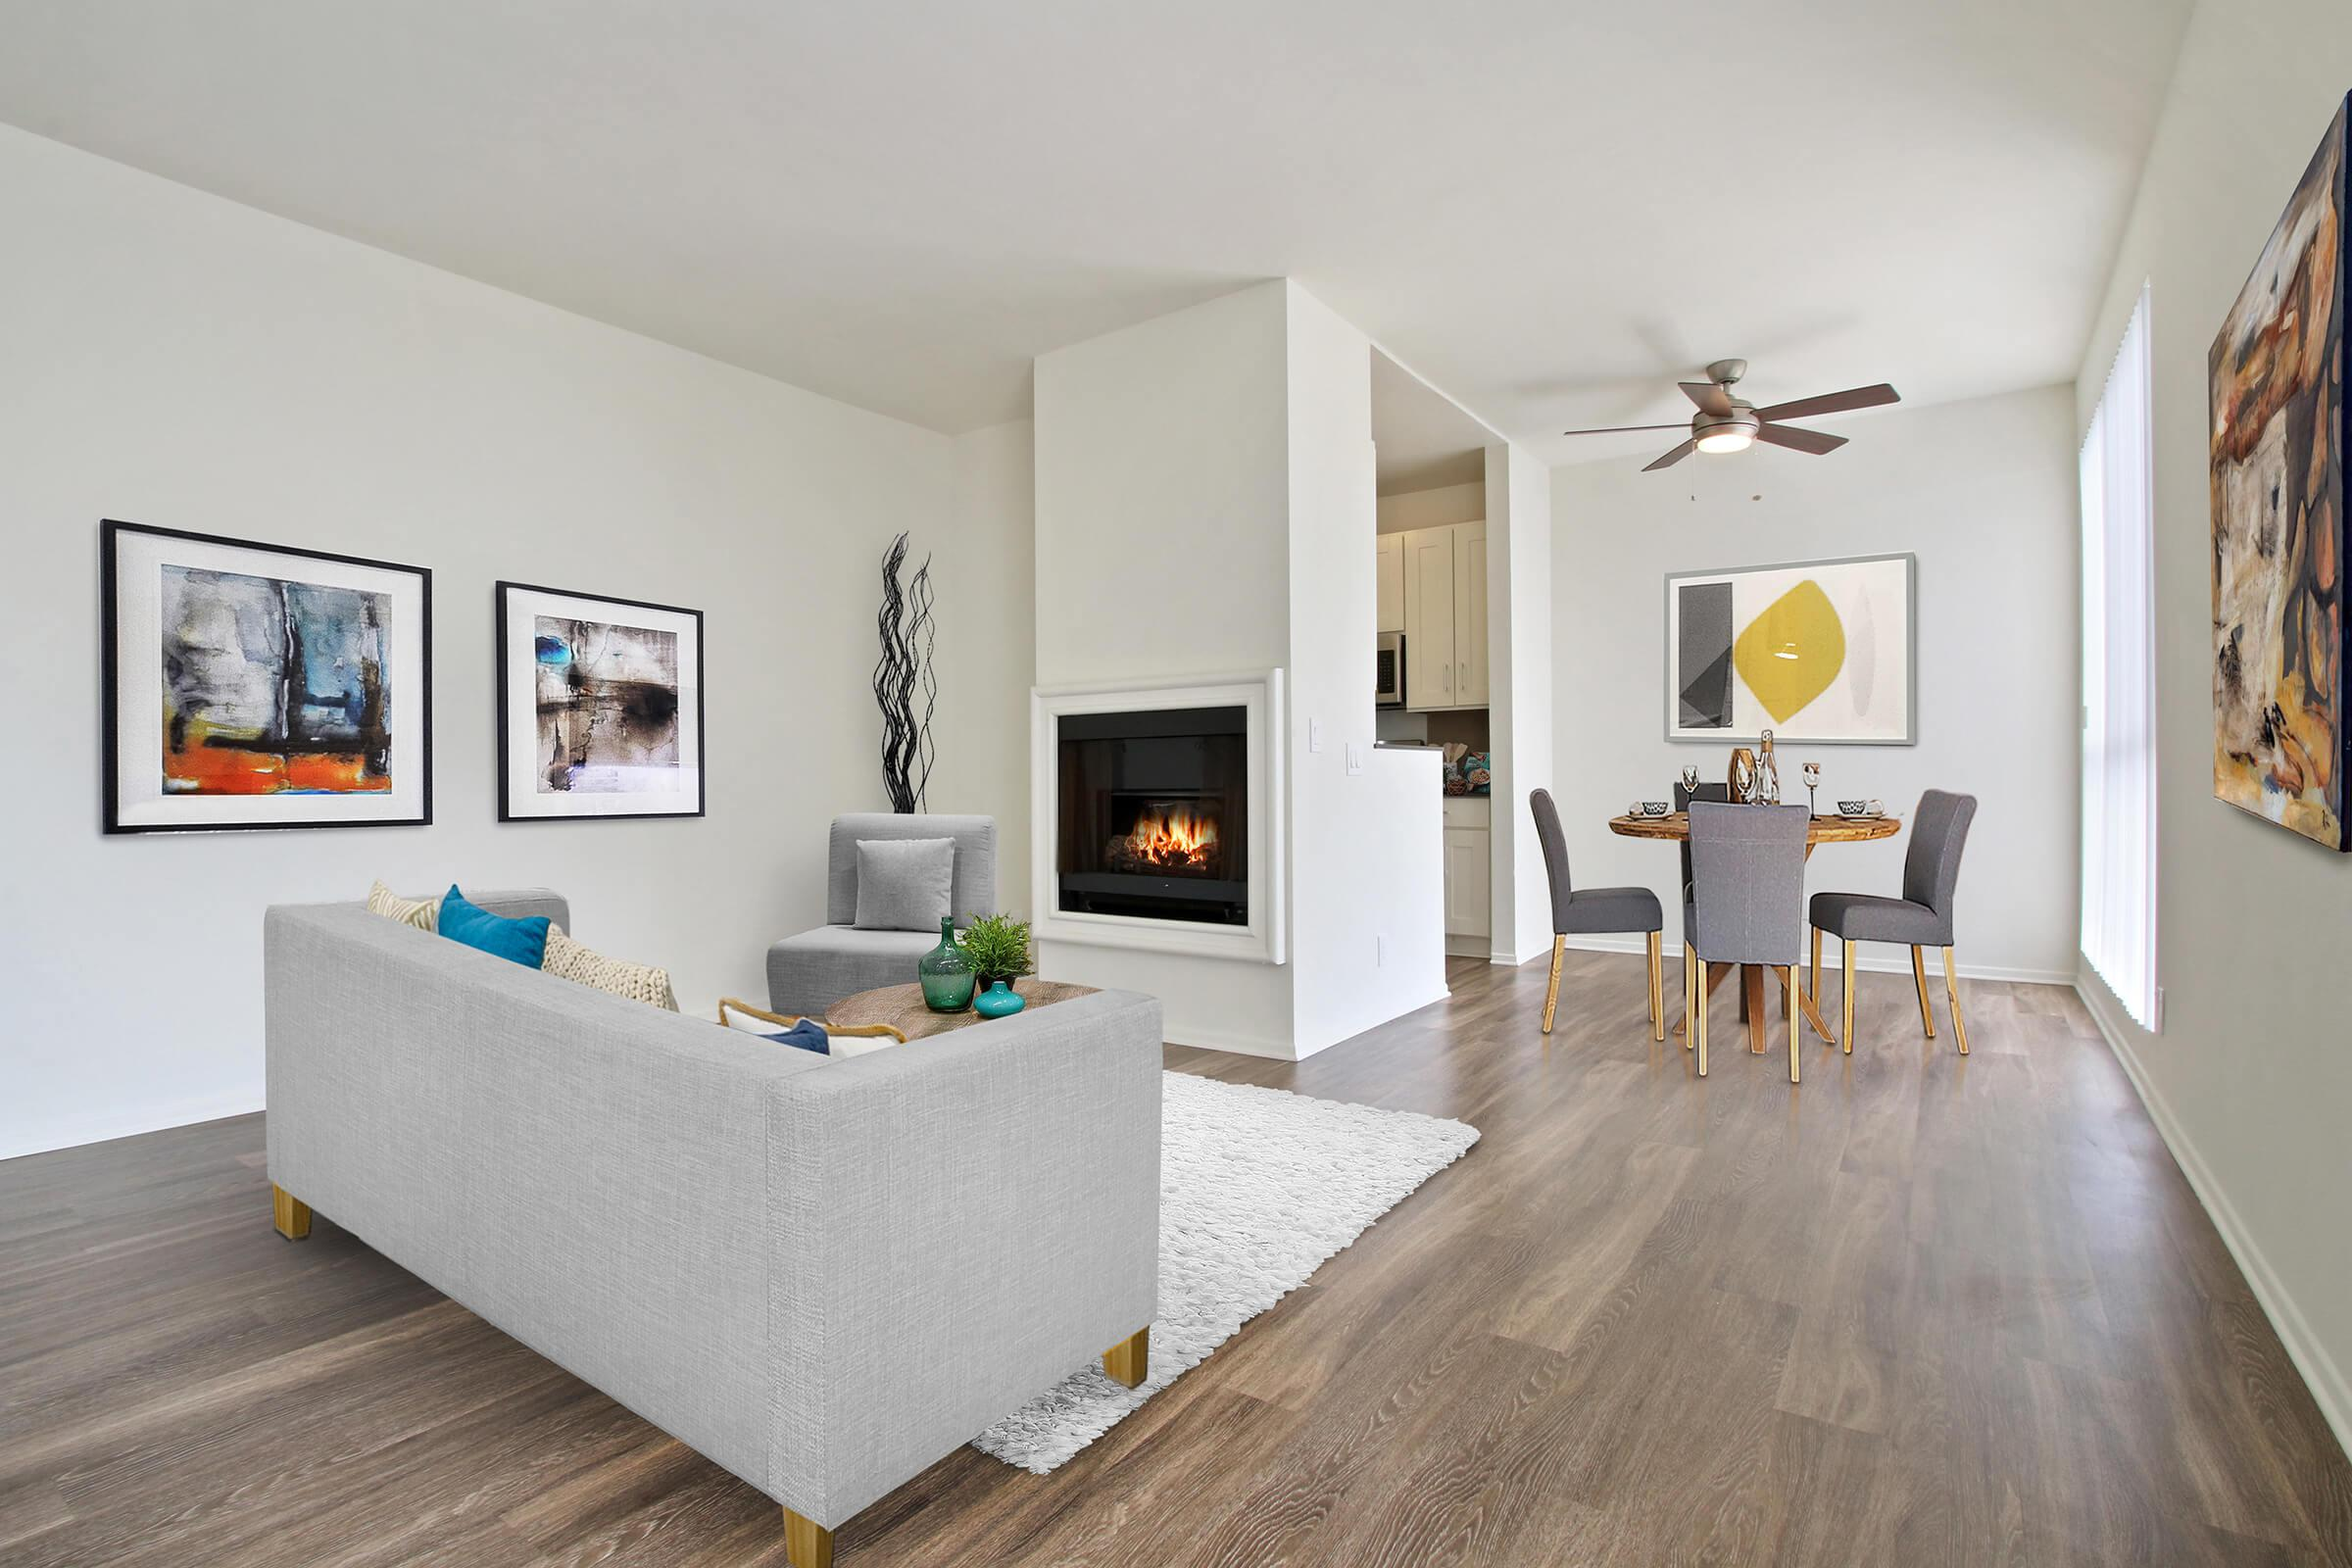 Park Overland - Apartments in Century City, CA